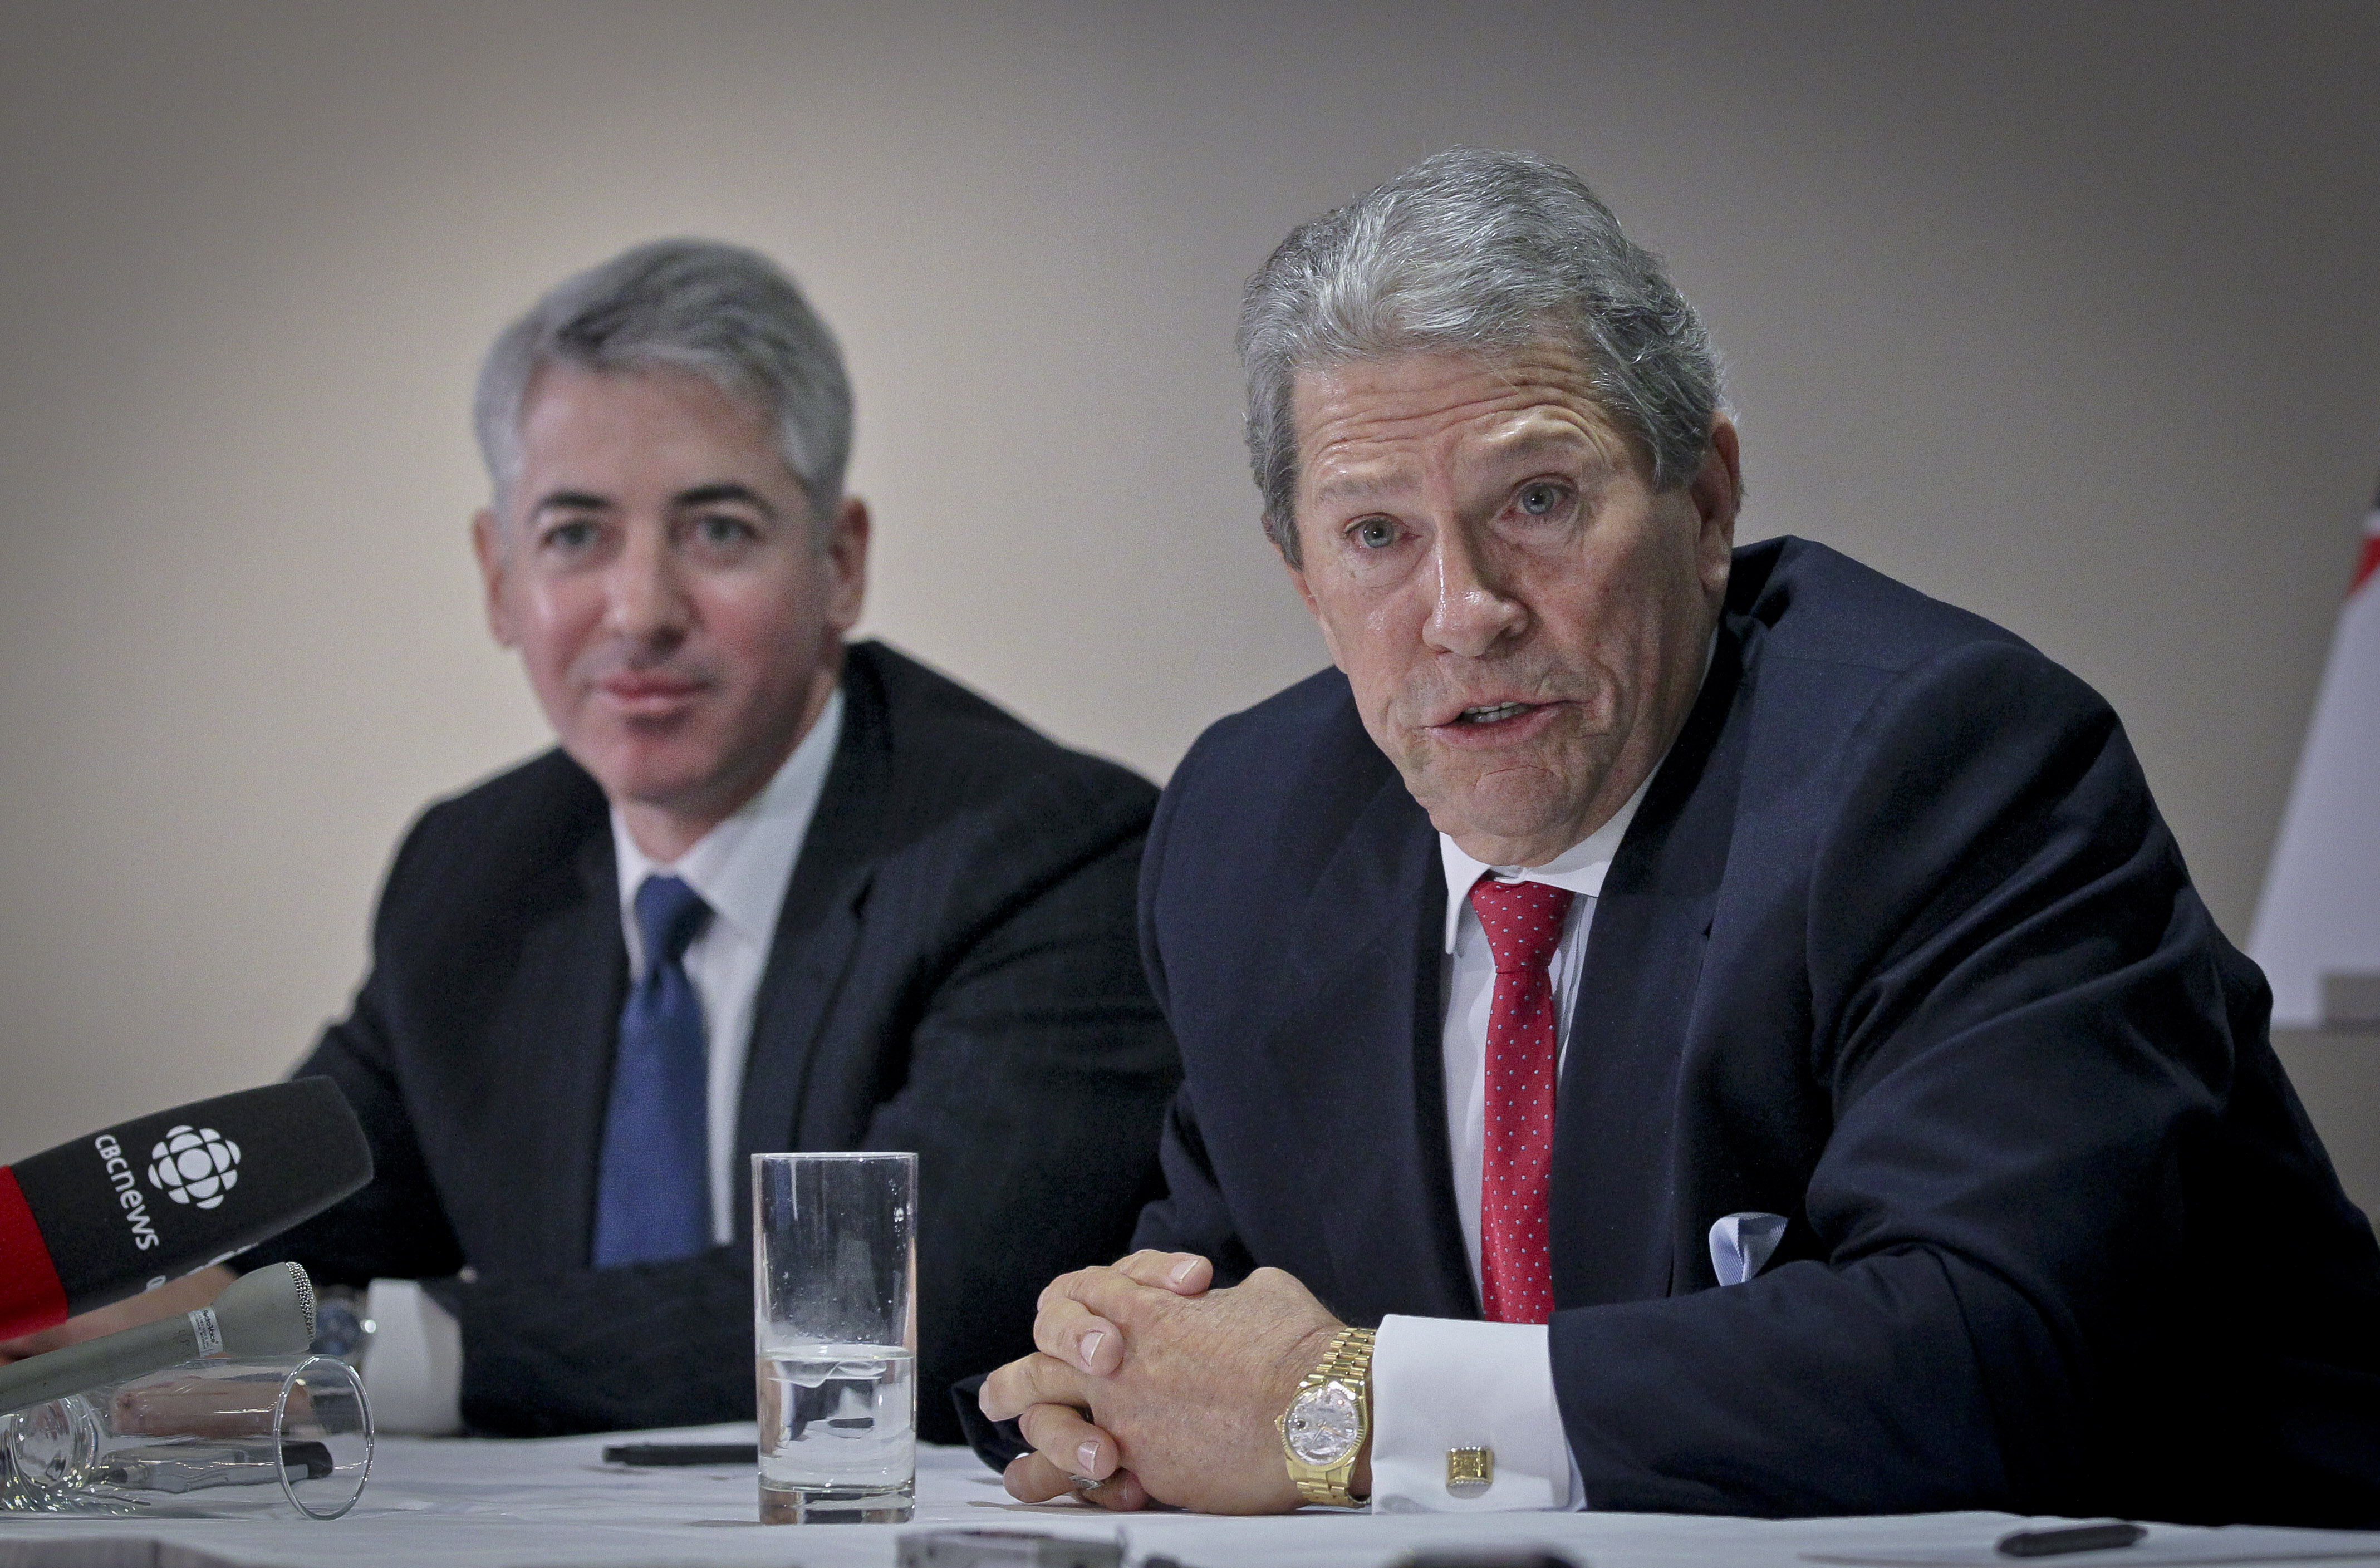 Ackman and Harrison